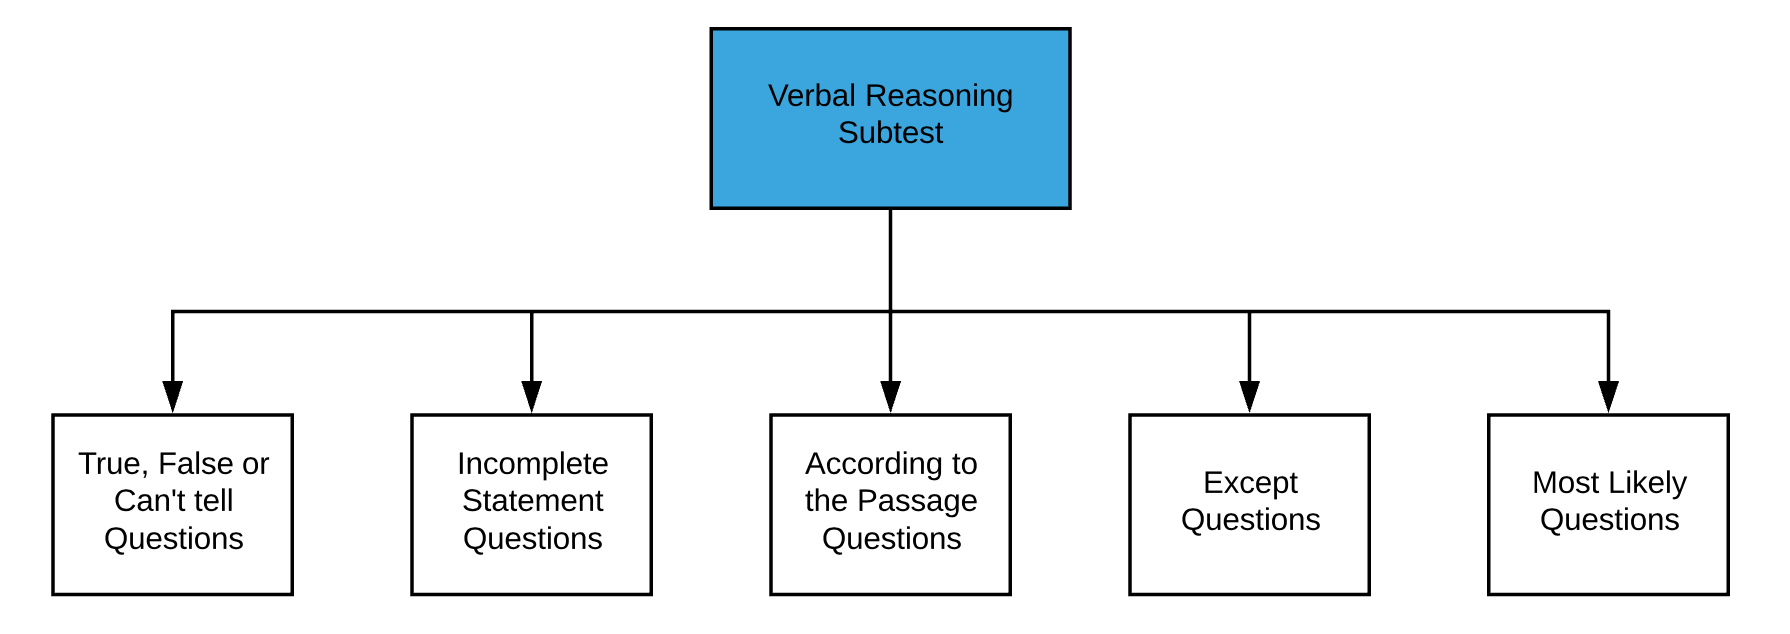 UCAT Guide Part 1 - Verbal Reasoning Subtest Flowchart